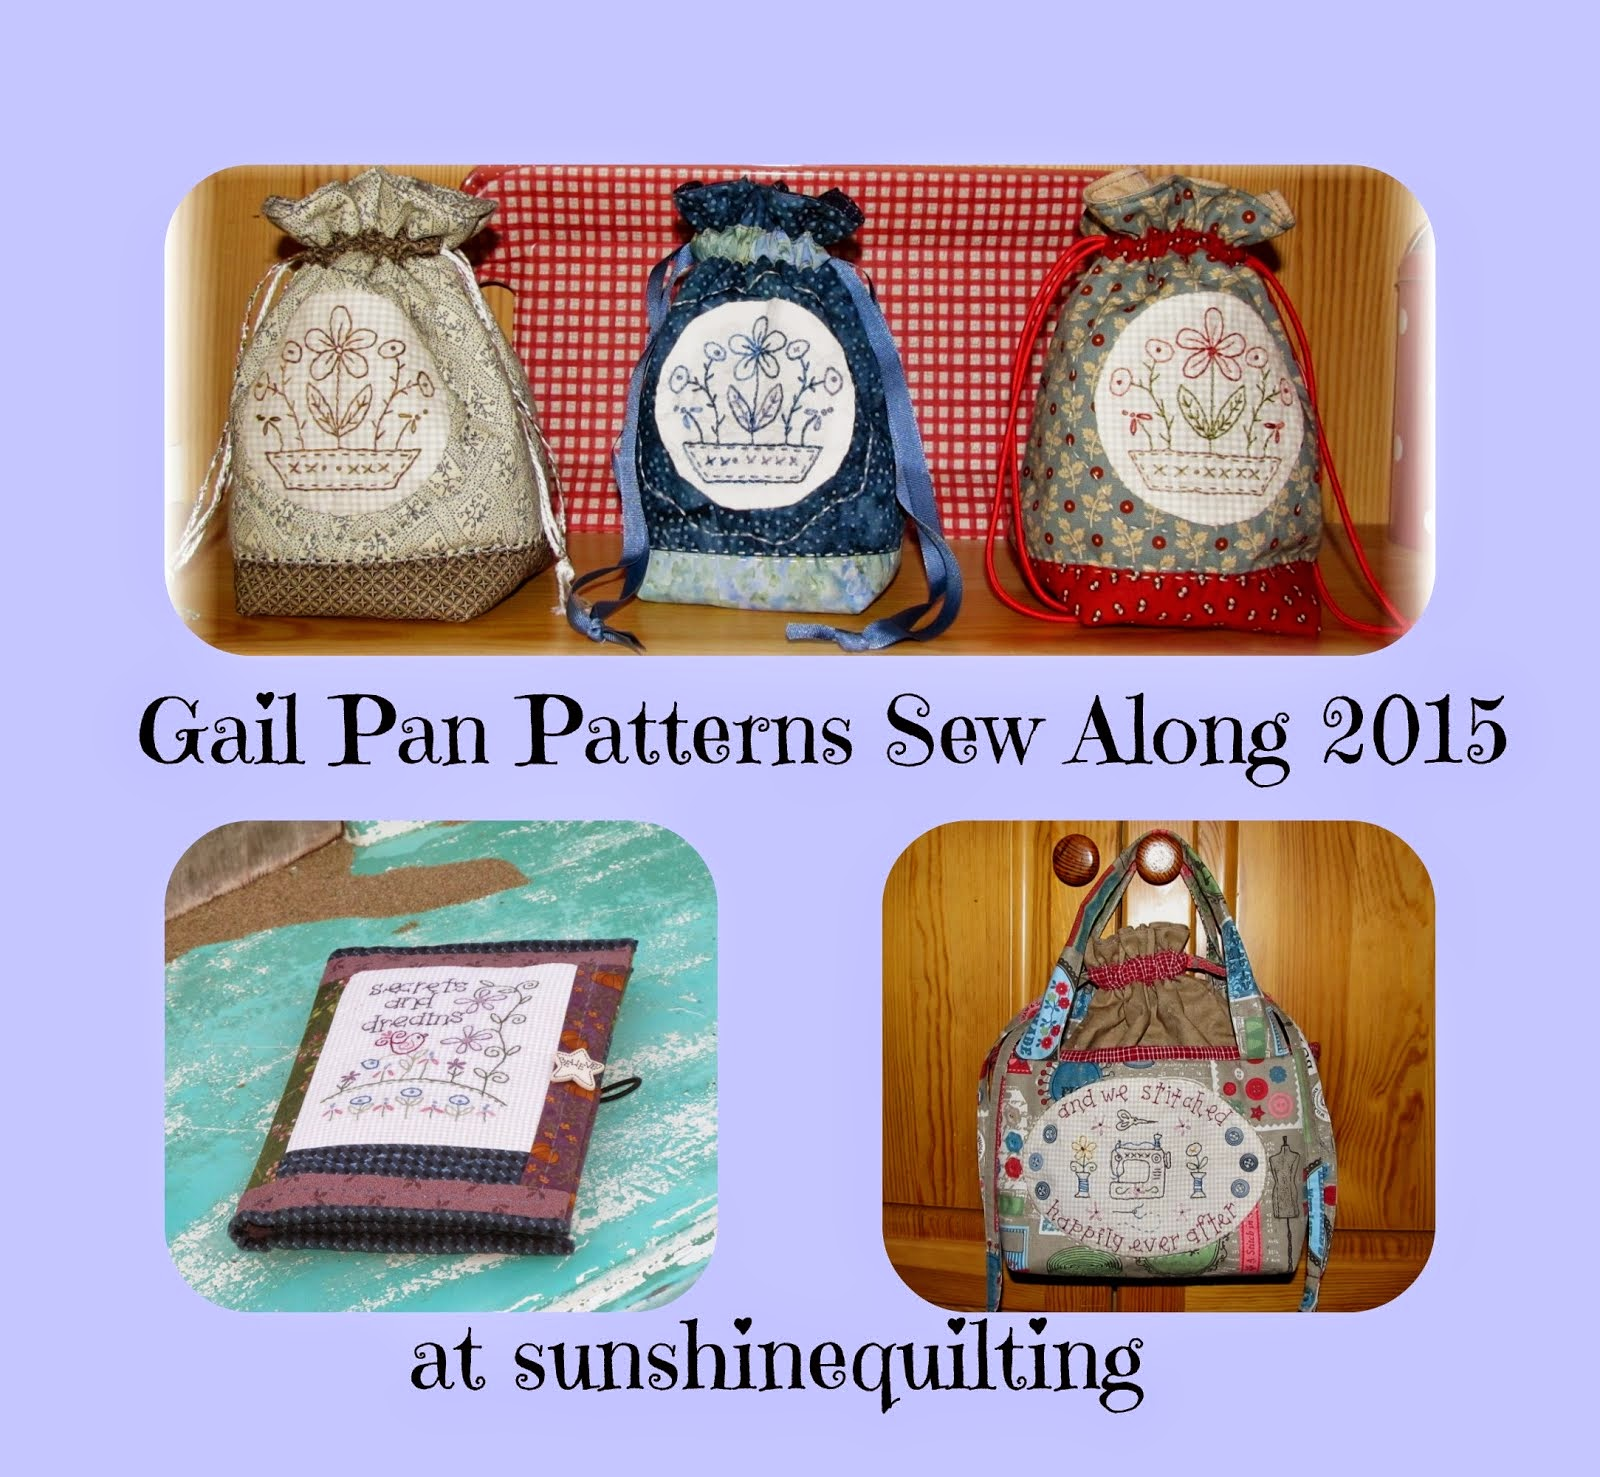 Gail Pan Patterns Sew Along 2015